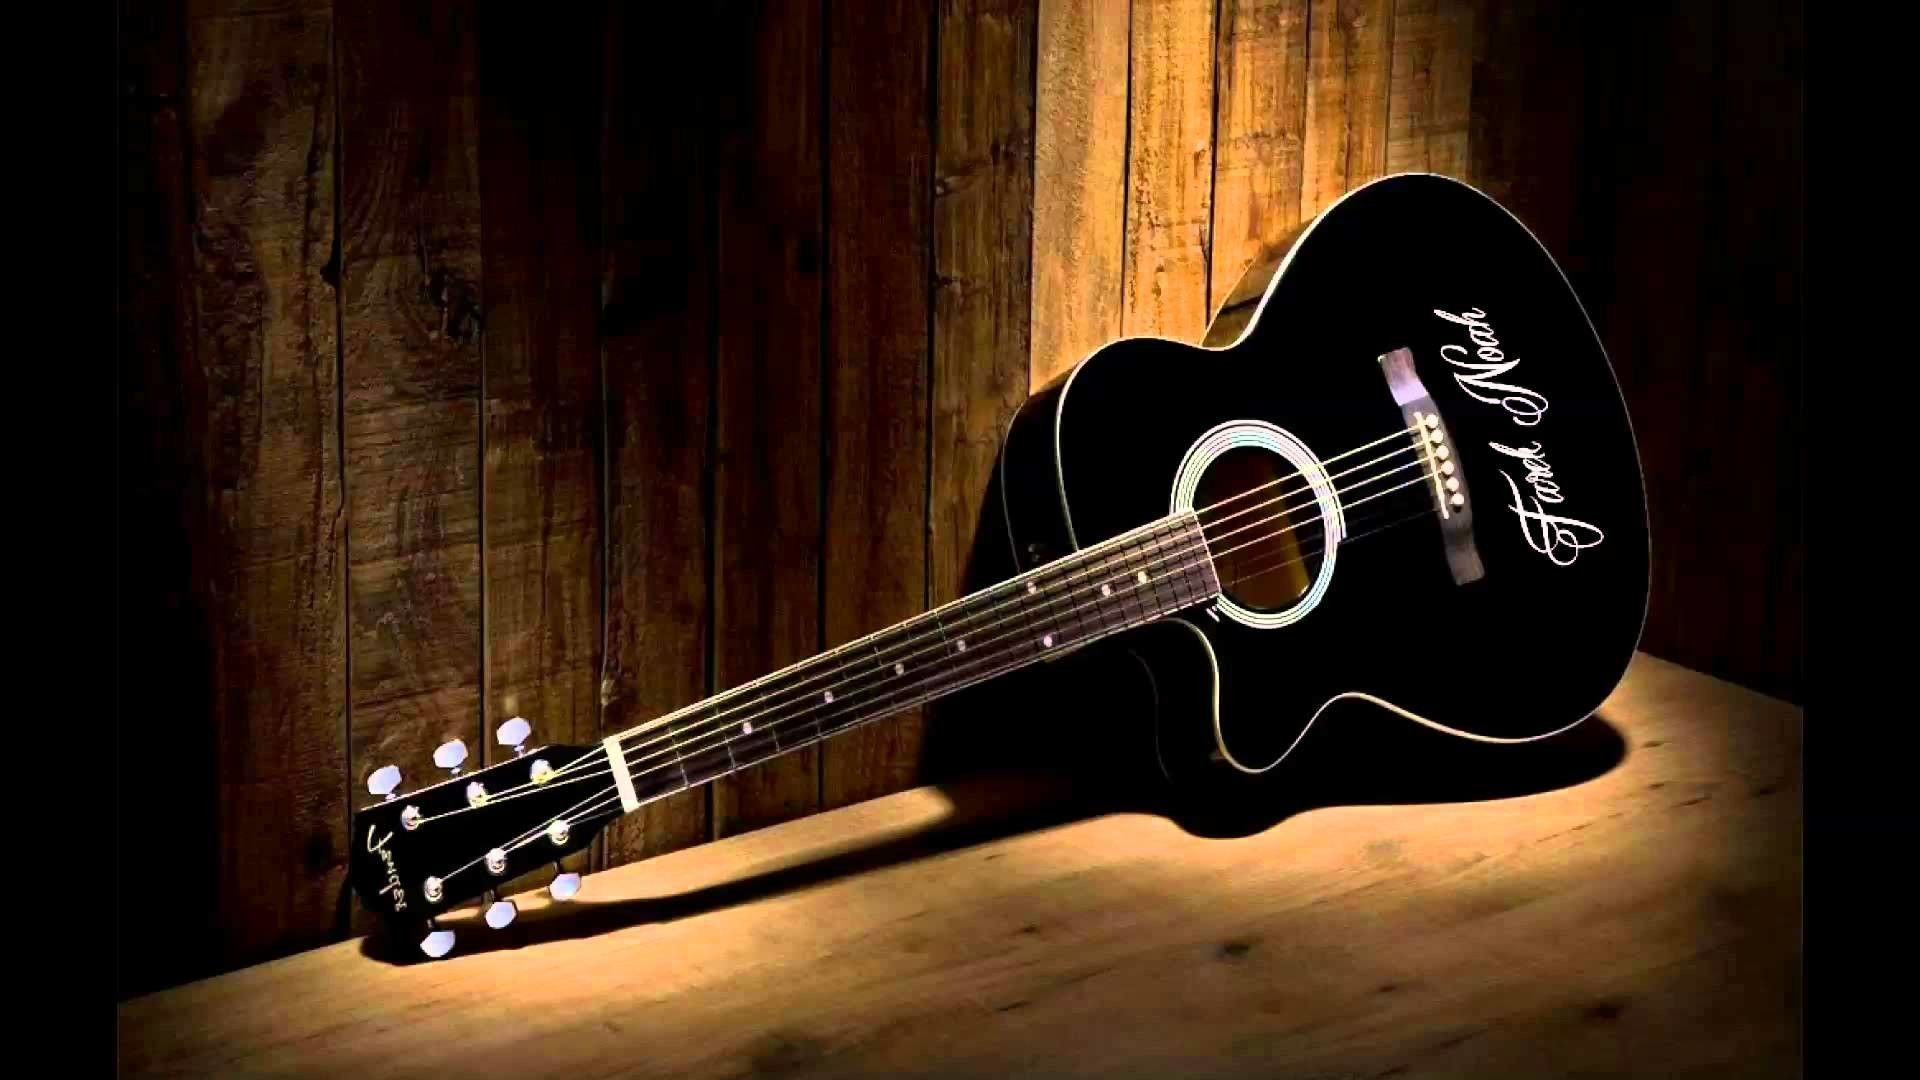 75 Electric Guitar HD Wallpapers